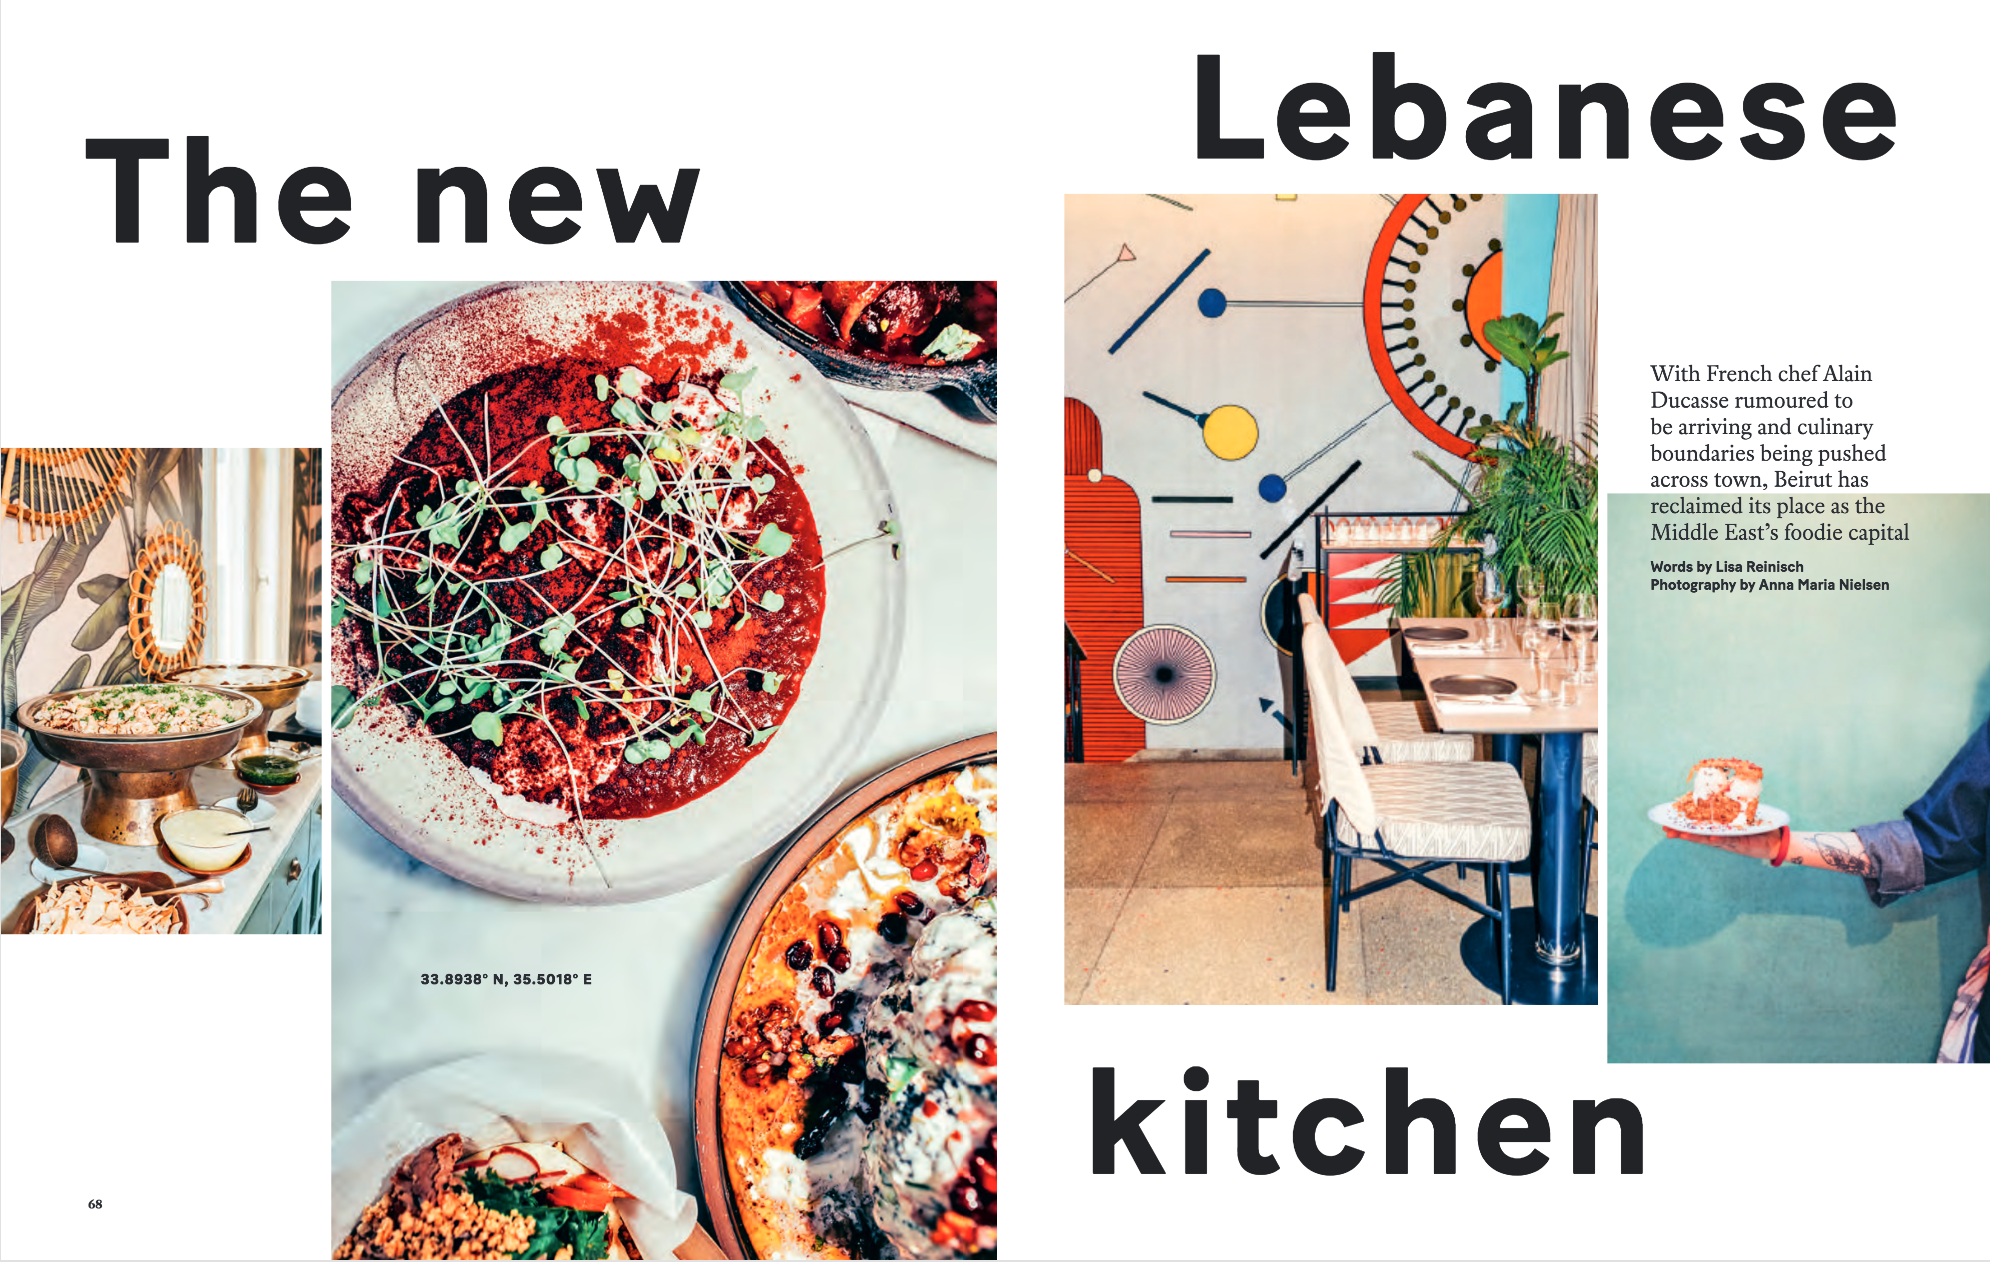 A round-up of Beirut's new wave of chefs and restaurants for Atlas, the Etihad inflight magazine. The very talented Anna Maria Nielsen captured stunning images for this feature. Click on image to access the full article.